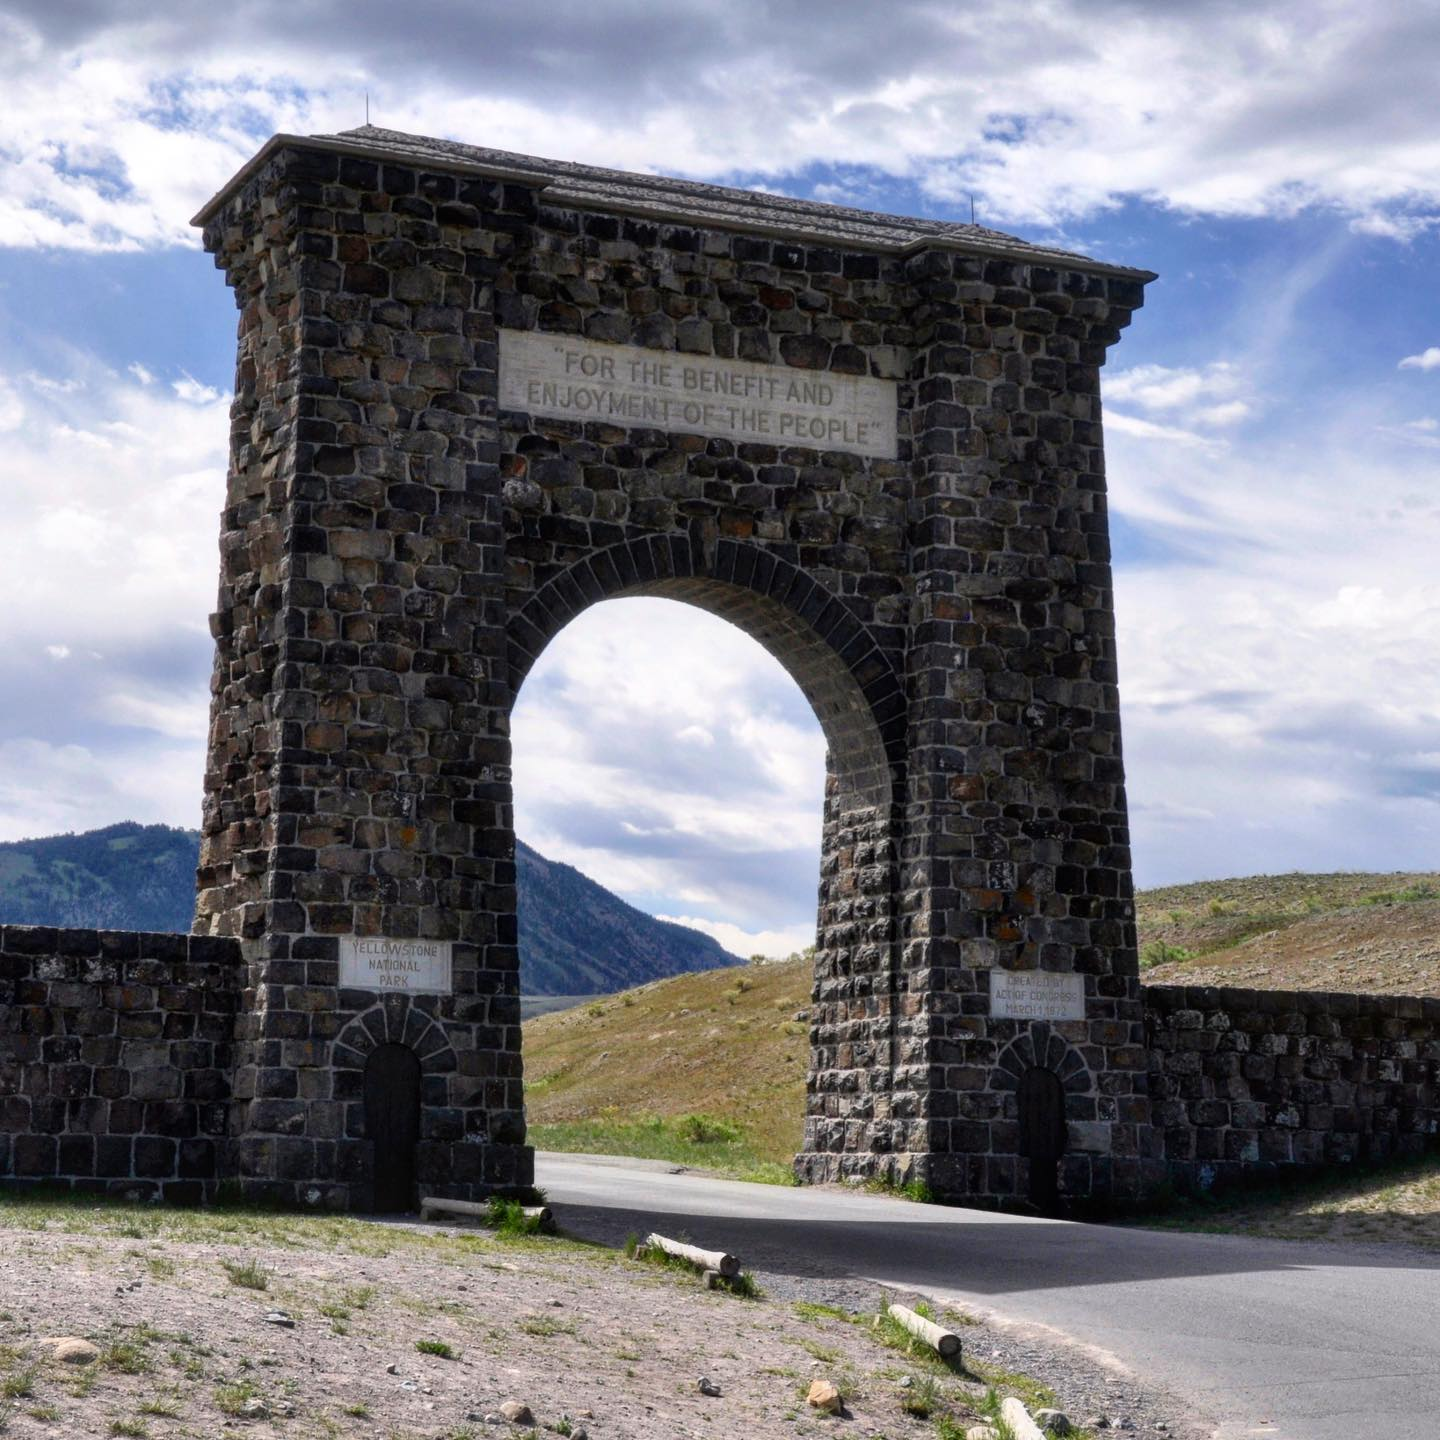 Roosevelt Arch, Gardiner, Montana If you're heading to Yellowstone National Park via Gardiner (North Entrance) the first thing likely to catch your attention is the Roosevelt Arch. Its cornerstone was laid down by President Theodore Roosevelt in 1903. The only such grand entranceway into a national park. #usa #usatravel #usatravels #usareisen #usatrip #roadtripusa #gardiner #montana #yellowstonenationalpark #yellowstonenps #yellowstone #yellowstonepark #arch #rooseveltarch #nationalparksusa #travel #travelblogger #travelphotography #travelpics #travelpic #montanaphotographer #travelawesome #traveladdict #travellover #travellife #travelblog #reisen #reiseliebe #reisenmachtglücklich #instatraveling